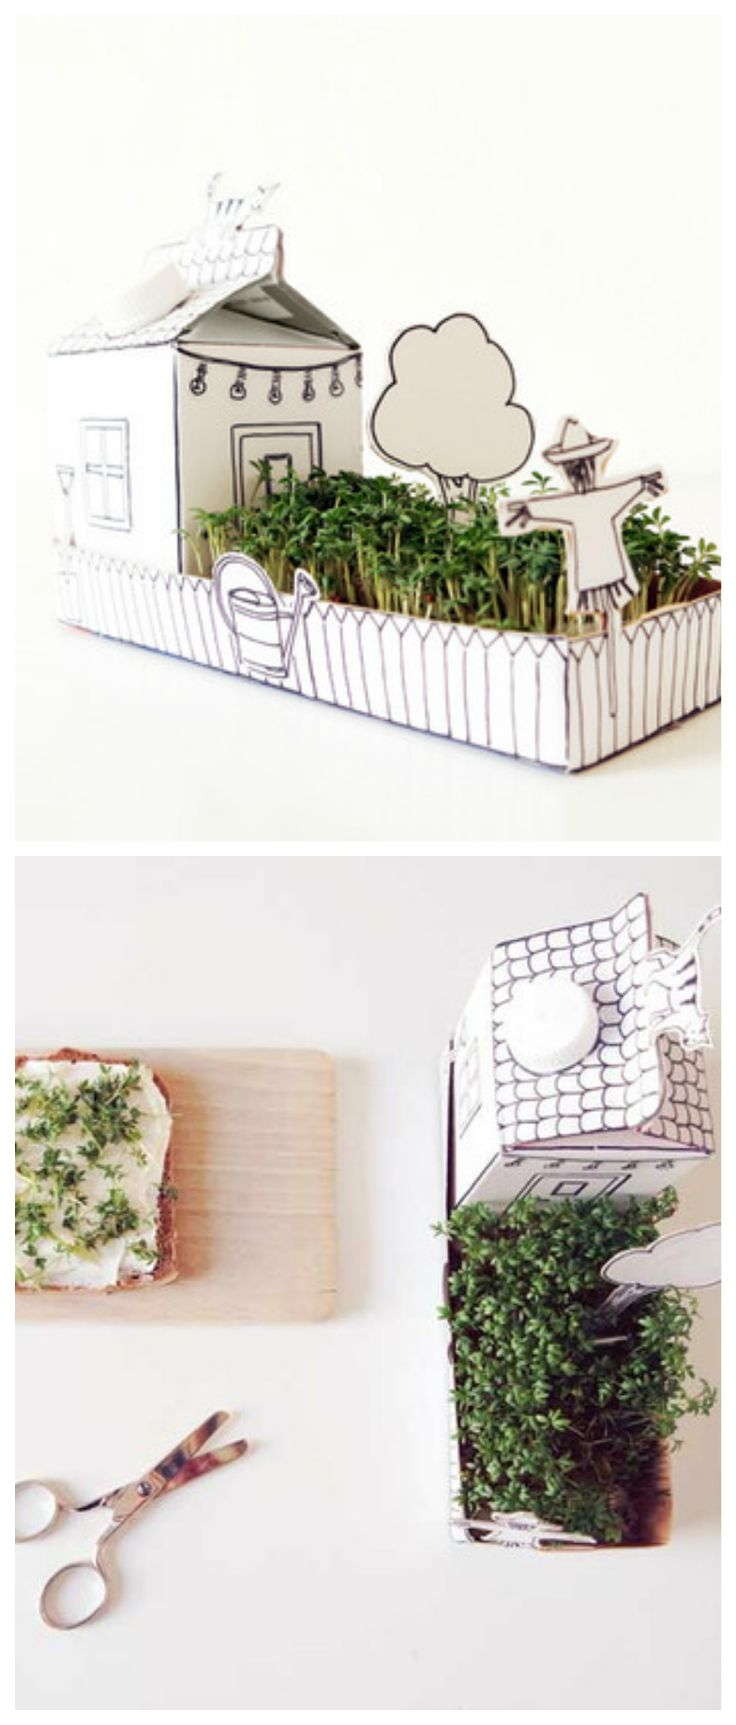 DIY-Kit für ein Papierhaus für einen kleinen Kressegarten/ diy-kit: paper house for a little cress garden made by Parzelle43 via DaWanda.com